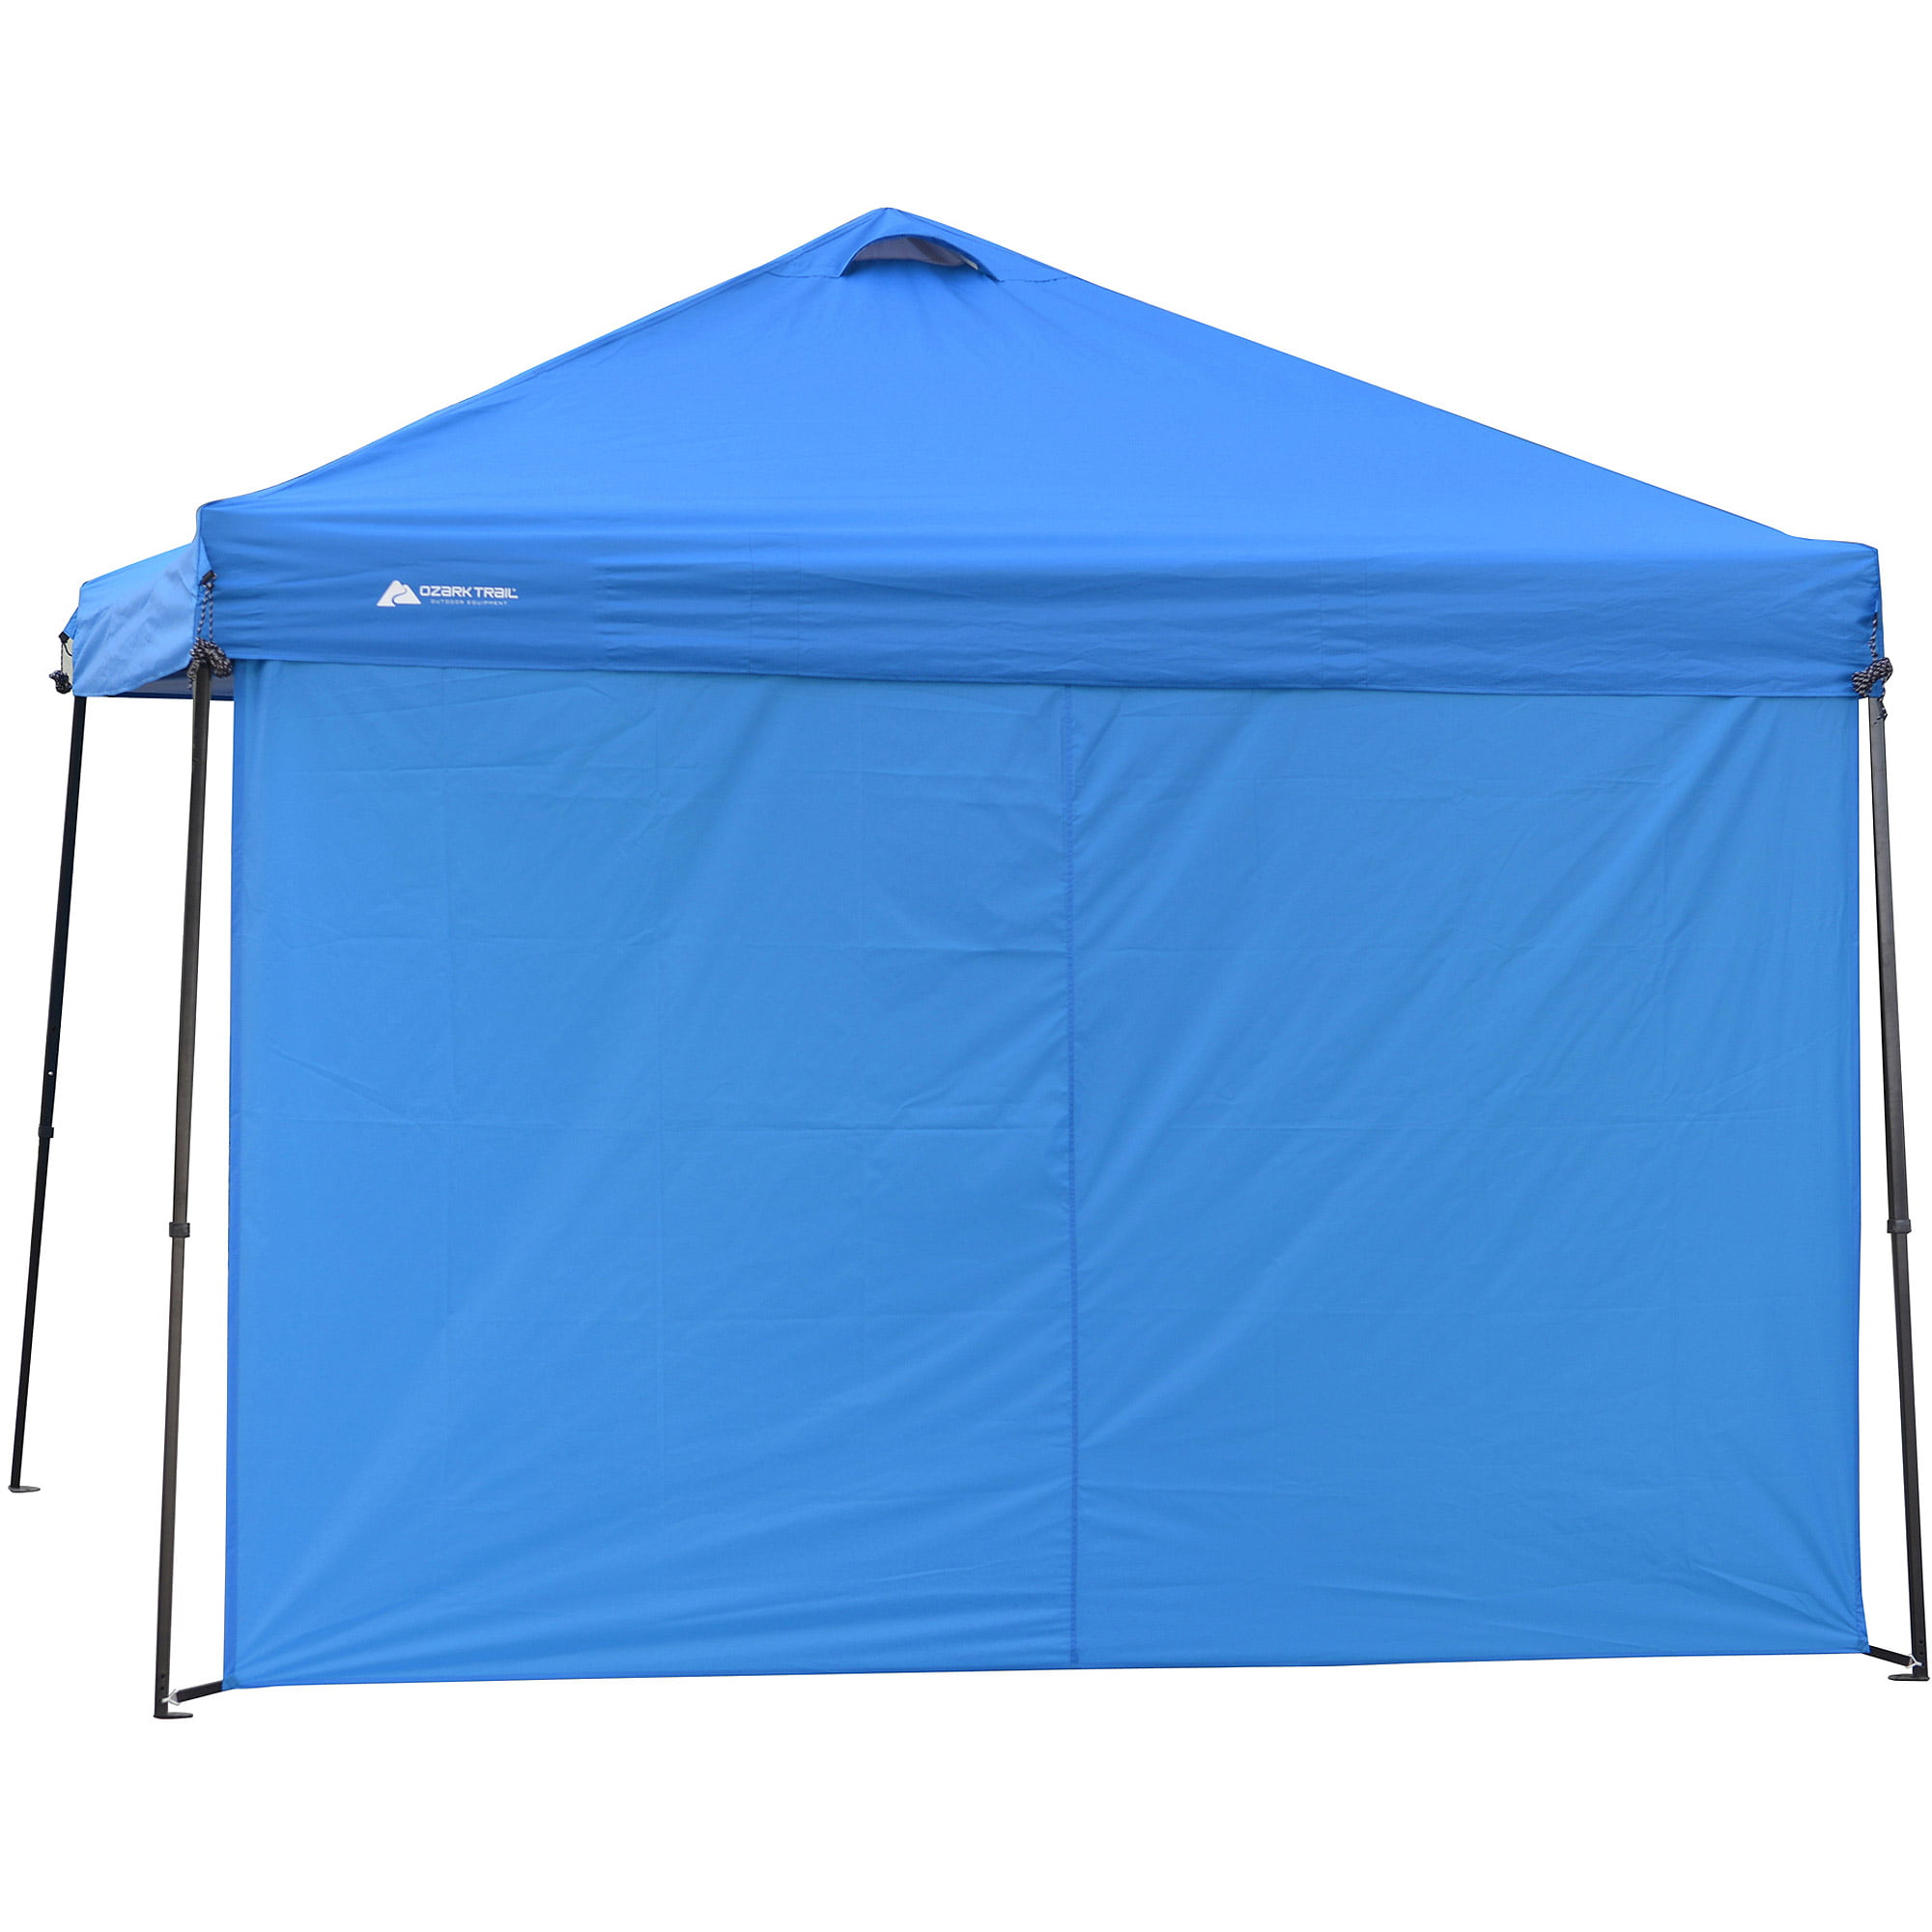 Ozark Trail Sun Wall for 10u0027 x 10u0027 Straight Leg Canopy / Gazebo - Walmart.com  sc 1 st  Walmart & Ozark Trail Sun Wall for 10u0027 x 10u0027 Straight Leg Canopy / Gazebo ...